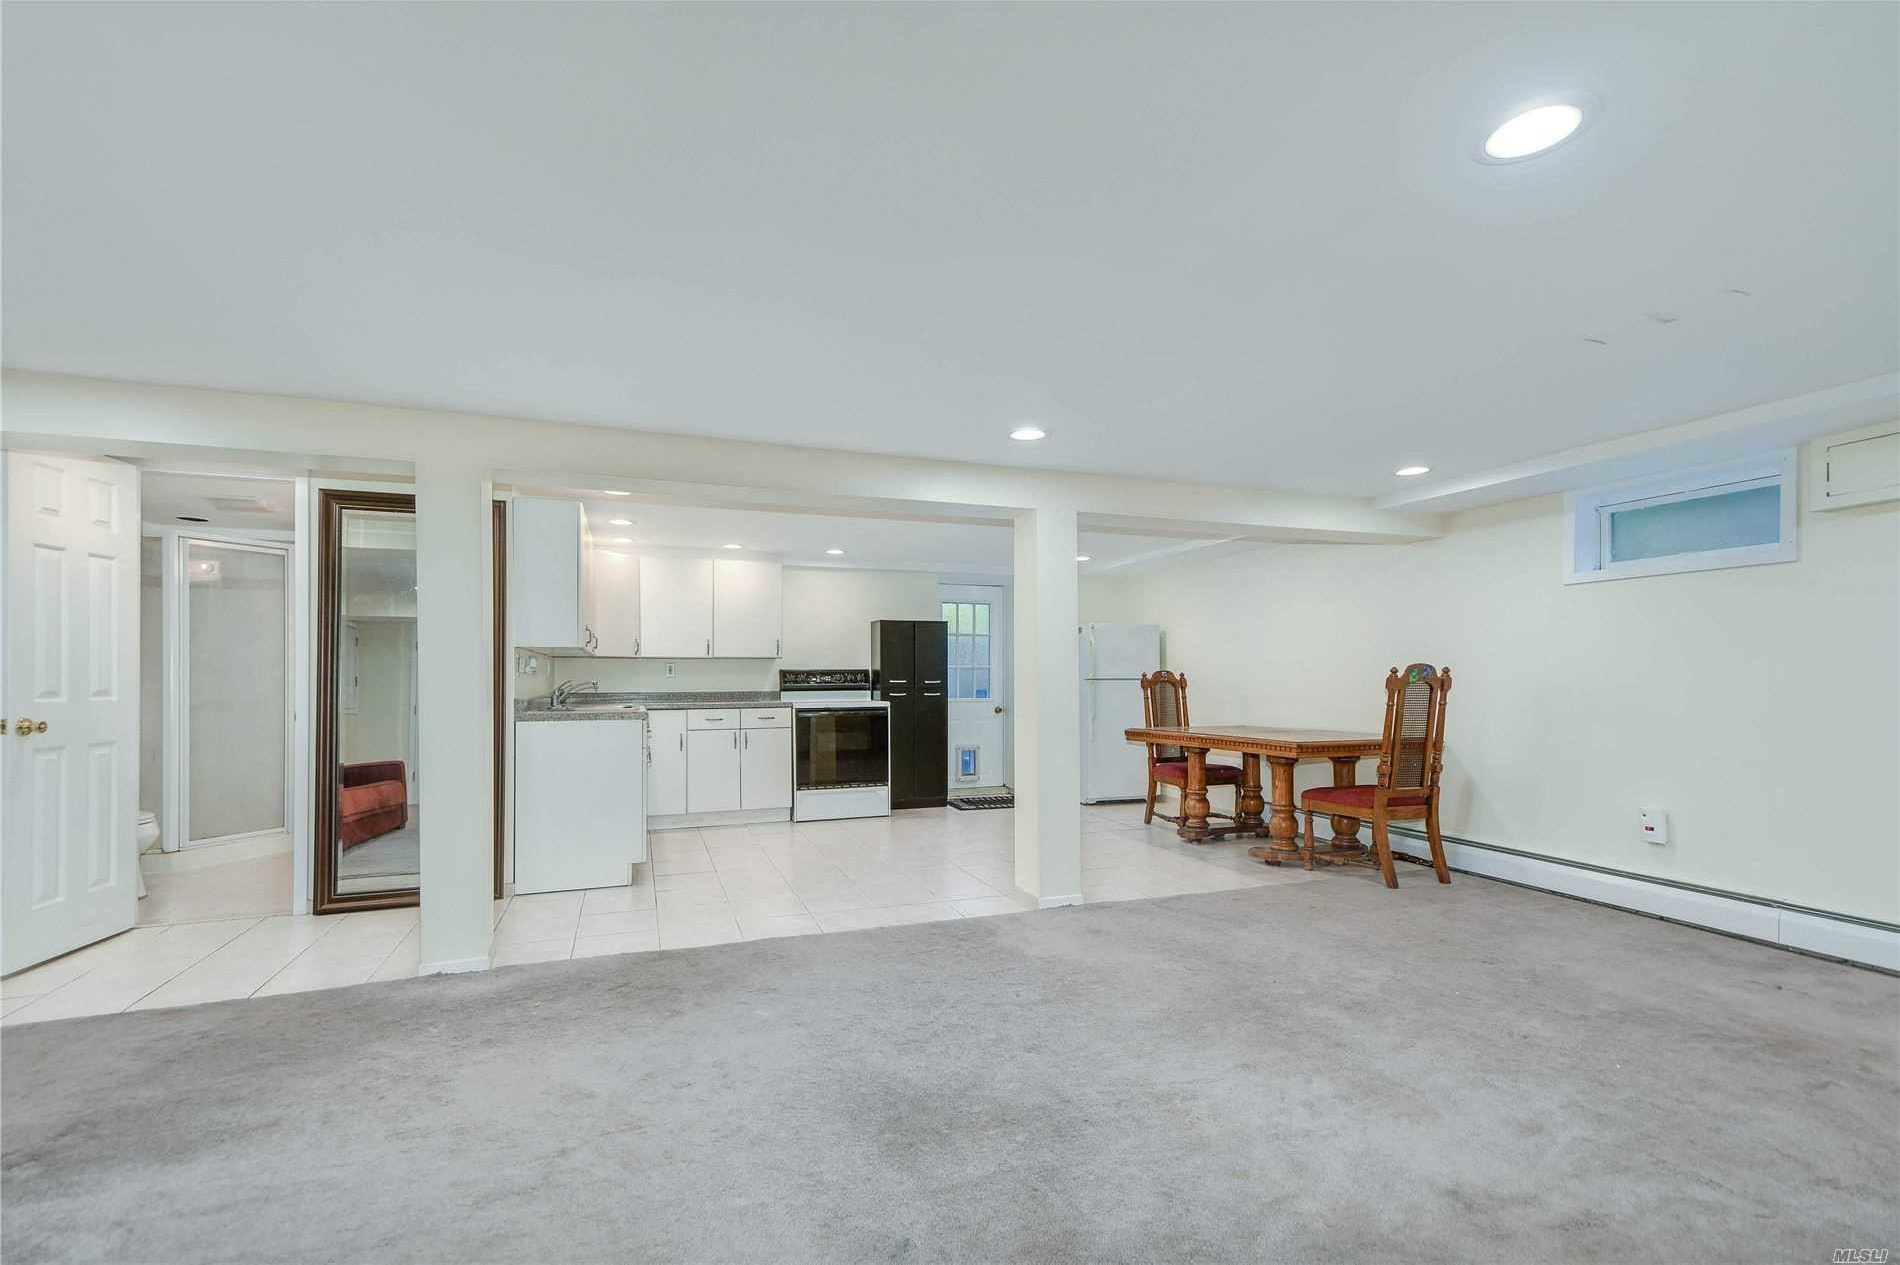 20 Best Apartments In Smithtown, NY (with pictures)!